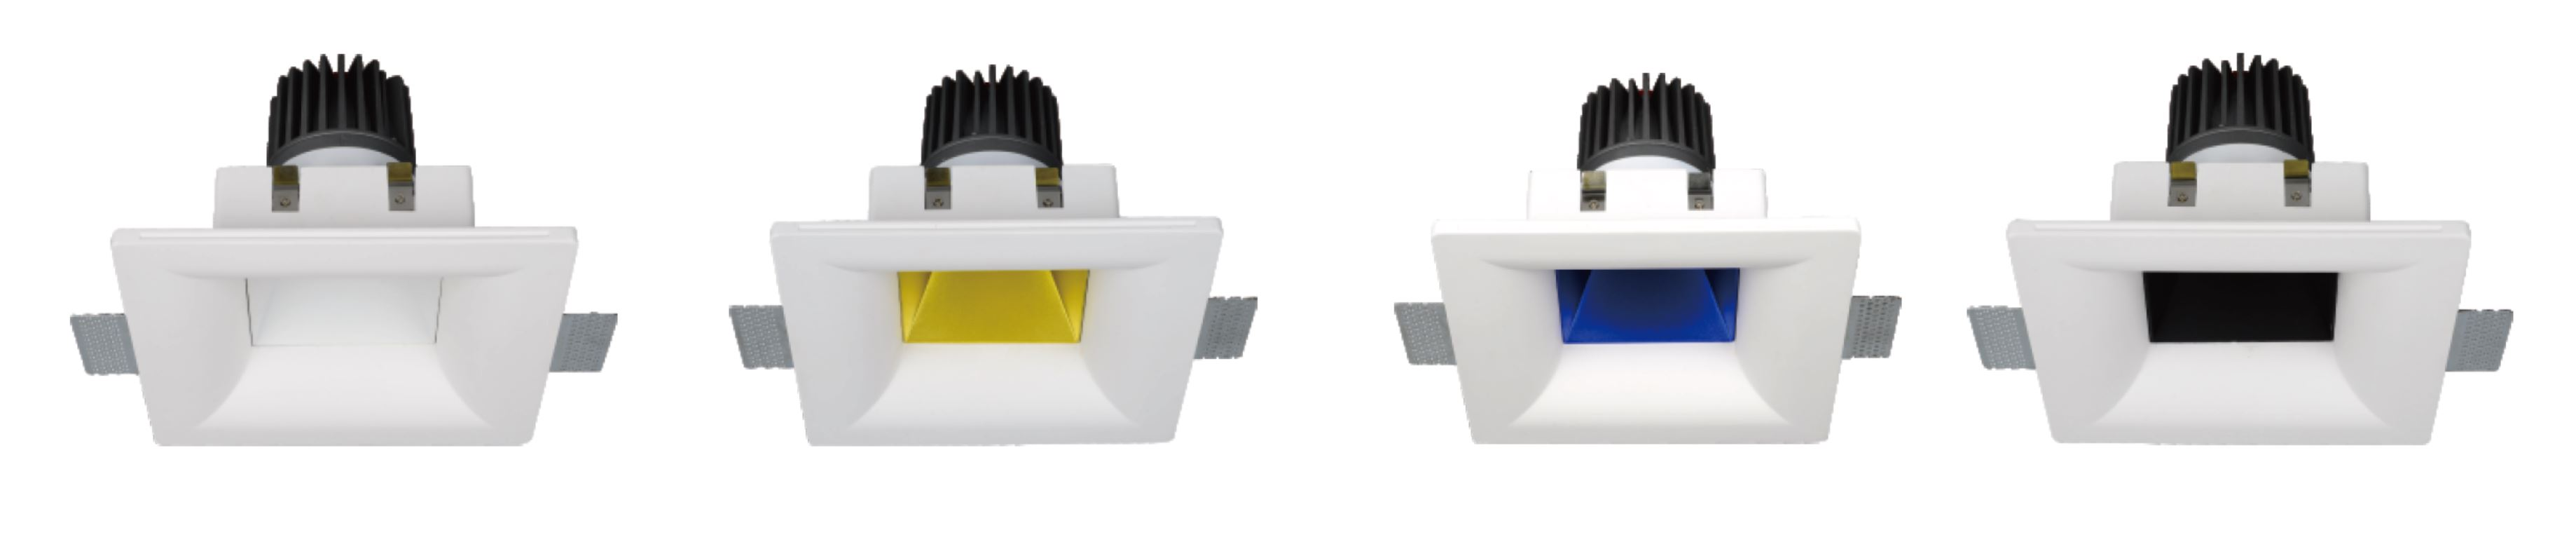 Dip-S Gibskarton LED Downlight Farben